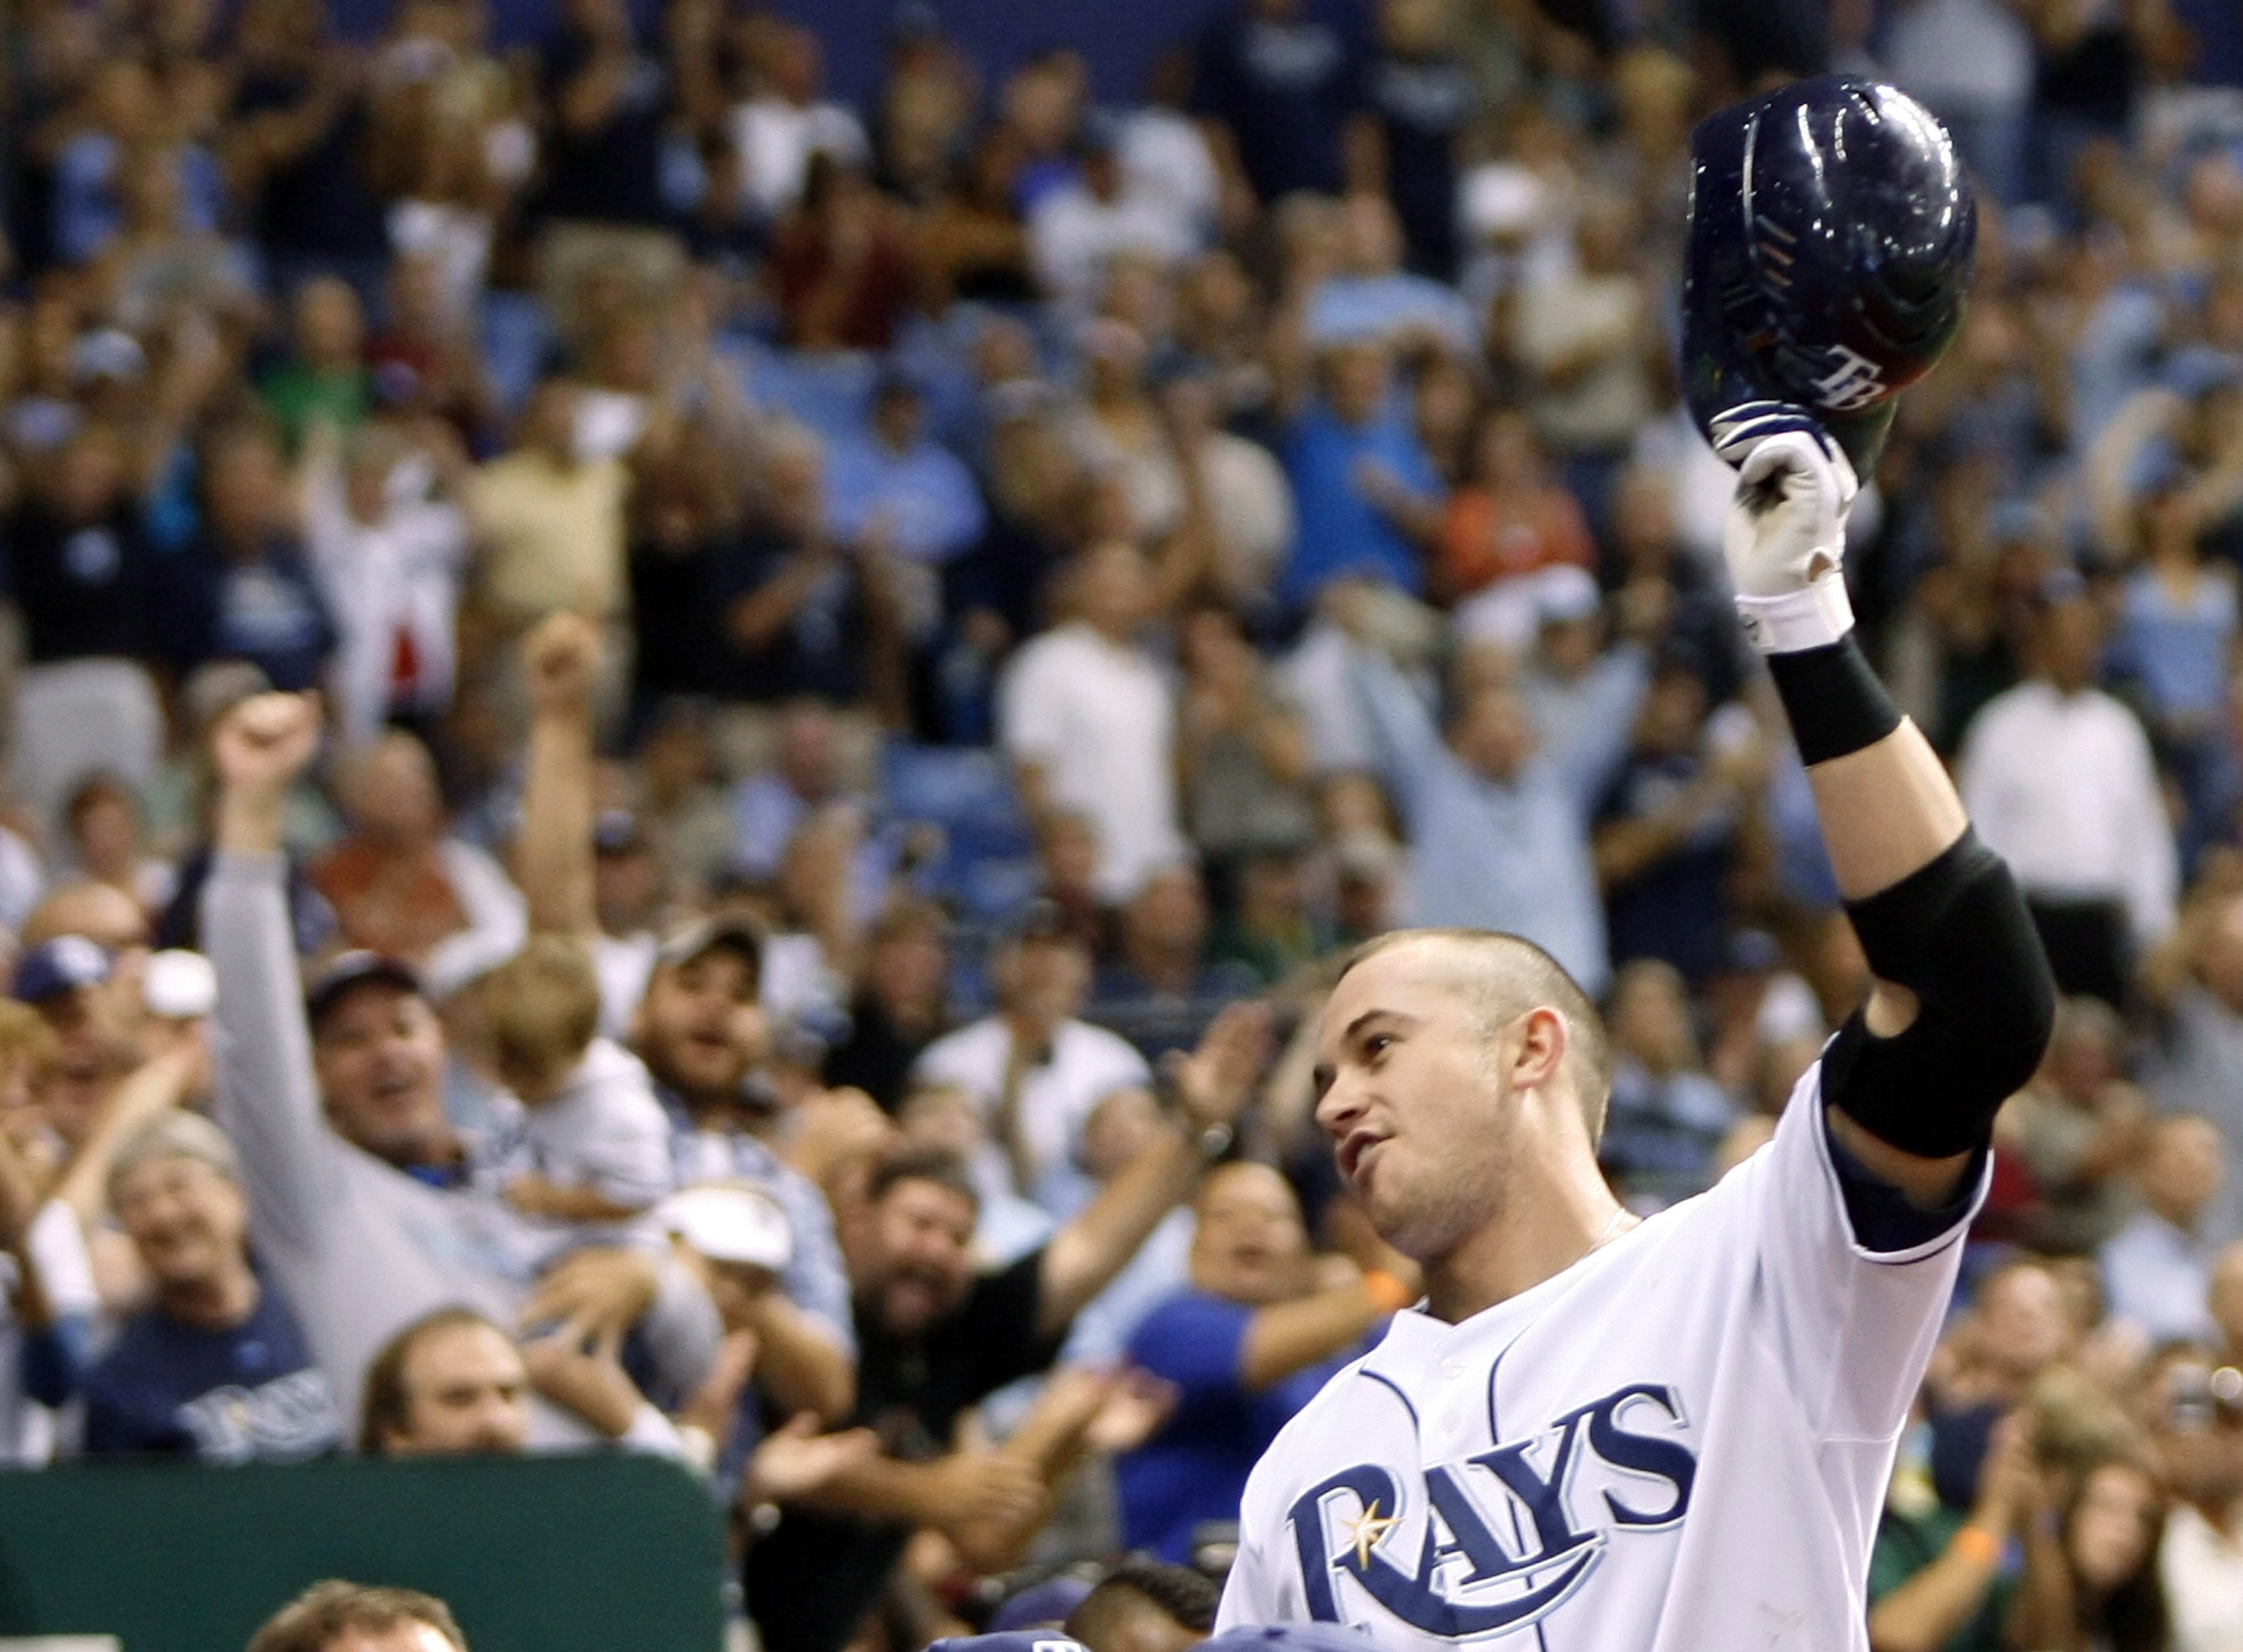 Evan Longoria Was Unanimously Voted AL Rookie Of The Year Associated Press